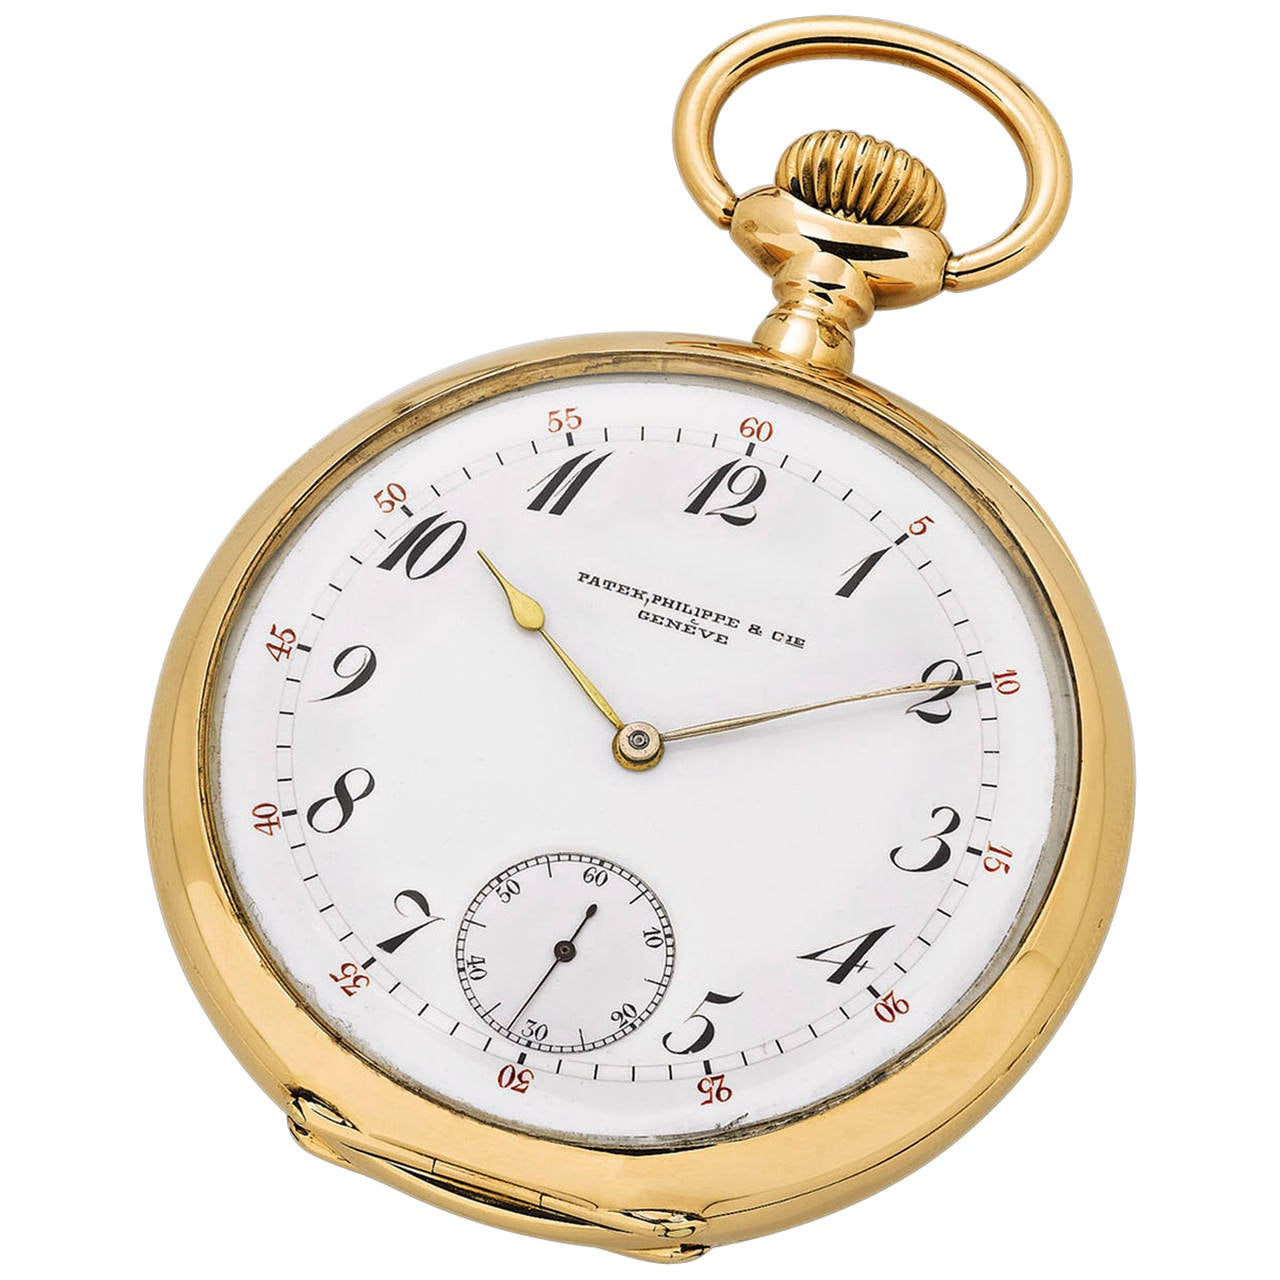 Patek Philippe Yellow Gold Imperial Russian Chronometro Gondolo Pocket Watch